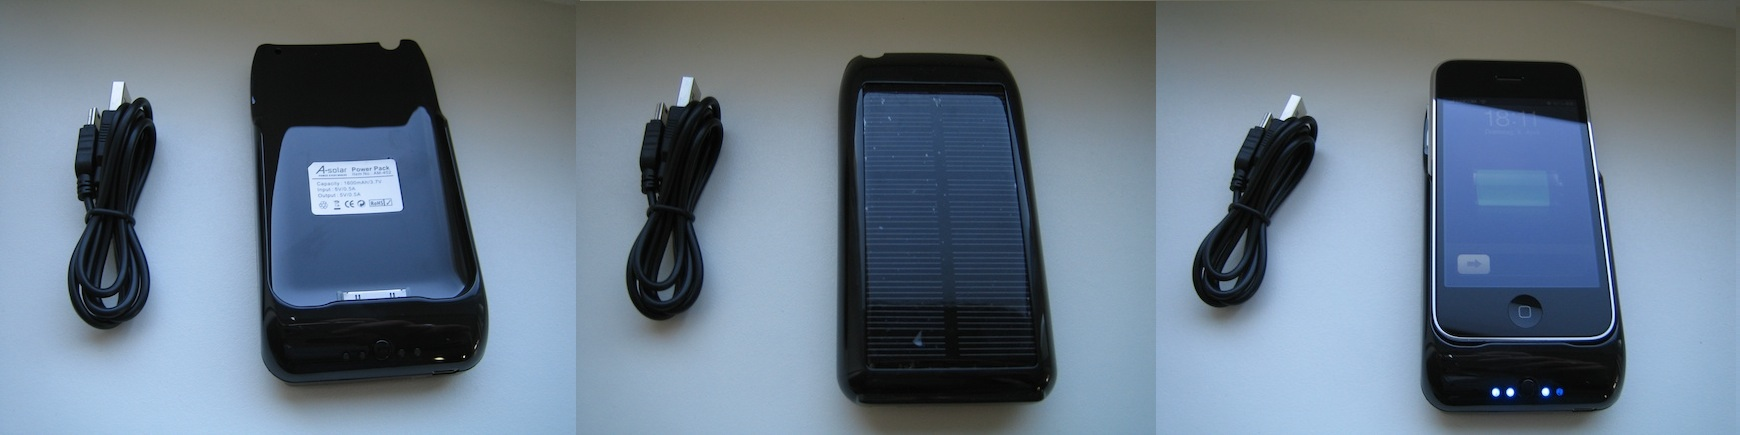 iphone solar akku im test iphone4ever. Black Bedroom Furniture Sets. Home Design Ideas